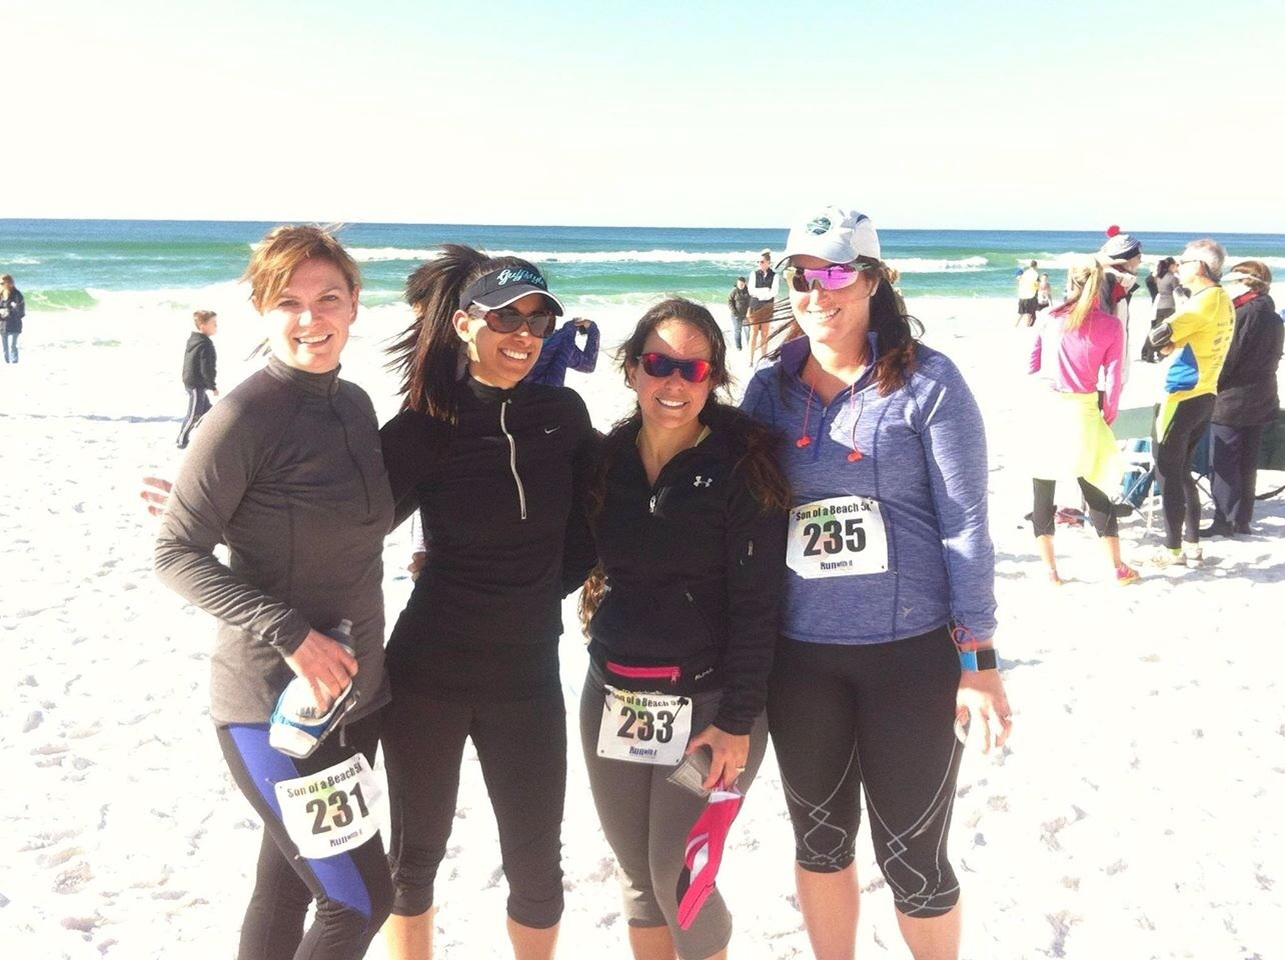 Me and the crew after the Son of a Beach 5k last February